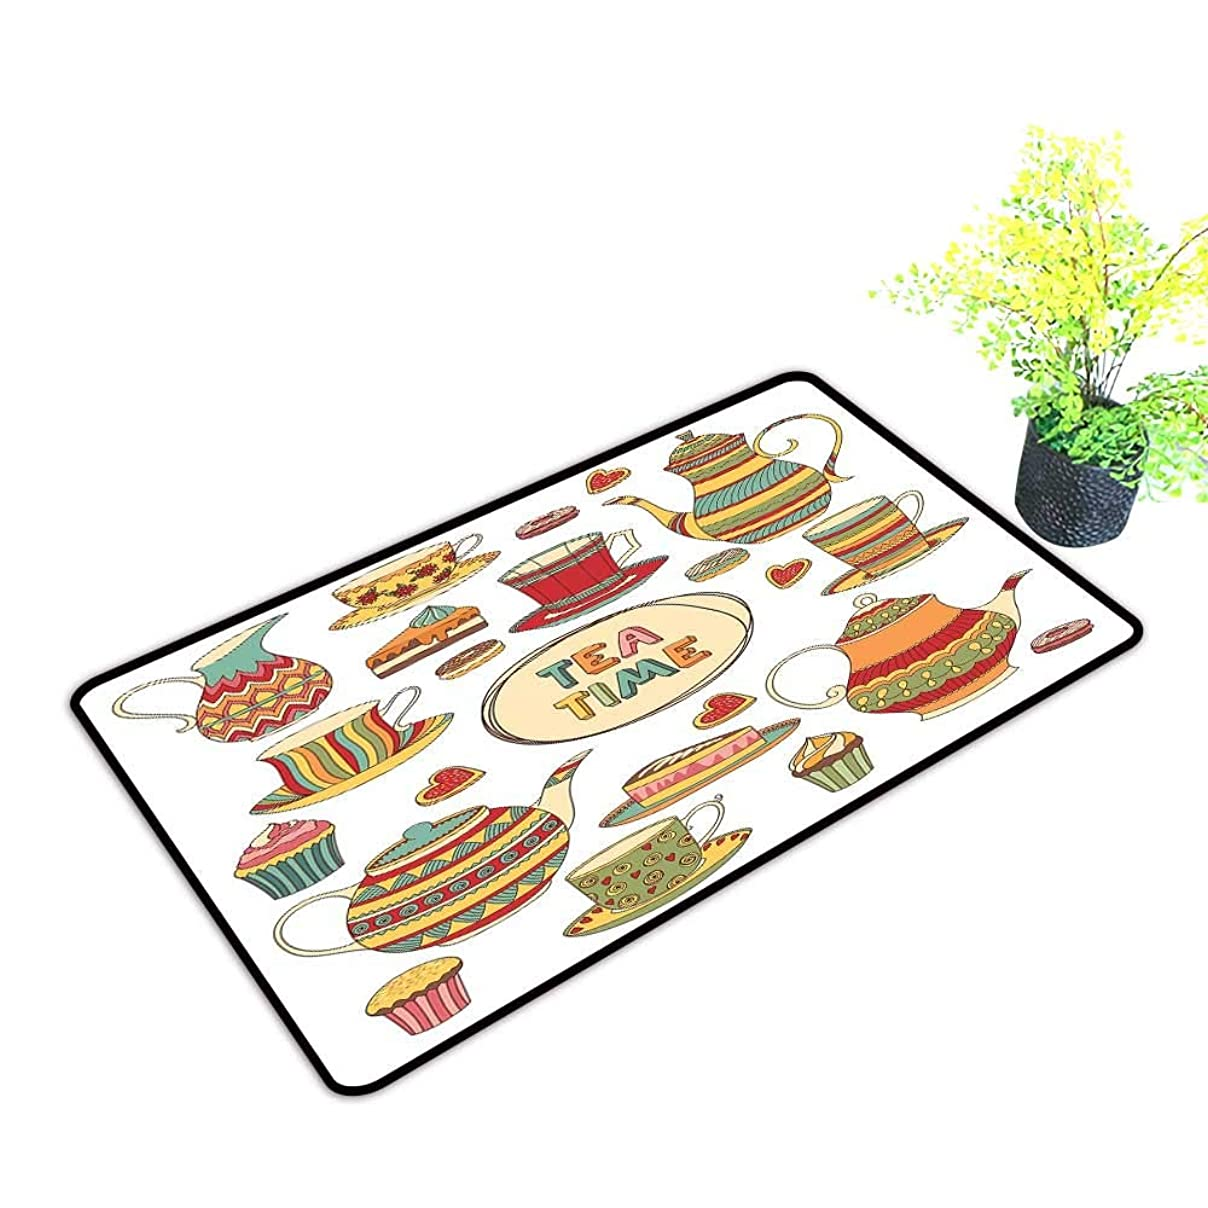 Outdoor Doormat Tea Party Tea Time Cartoon Set with Donuts Cake Slices Cupcakes Breakfast Get Together W35 xL47 Easy to Clean Multicolor mg53907770899